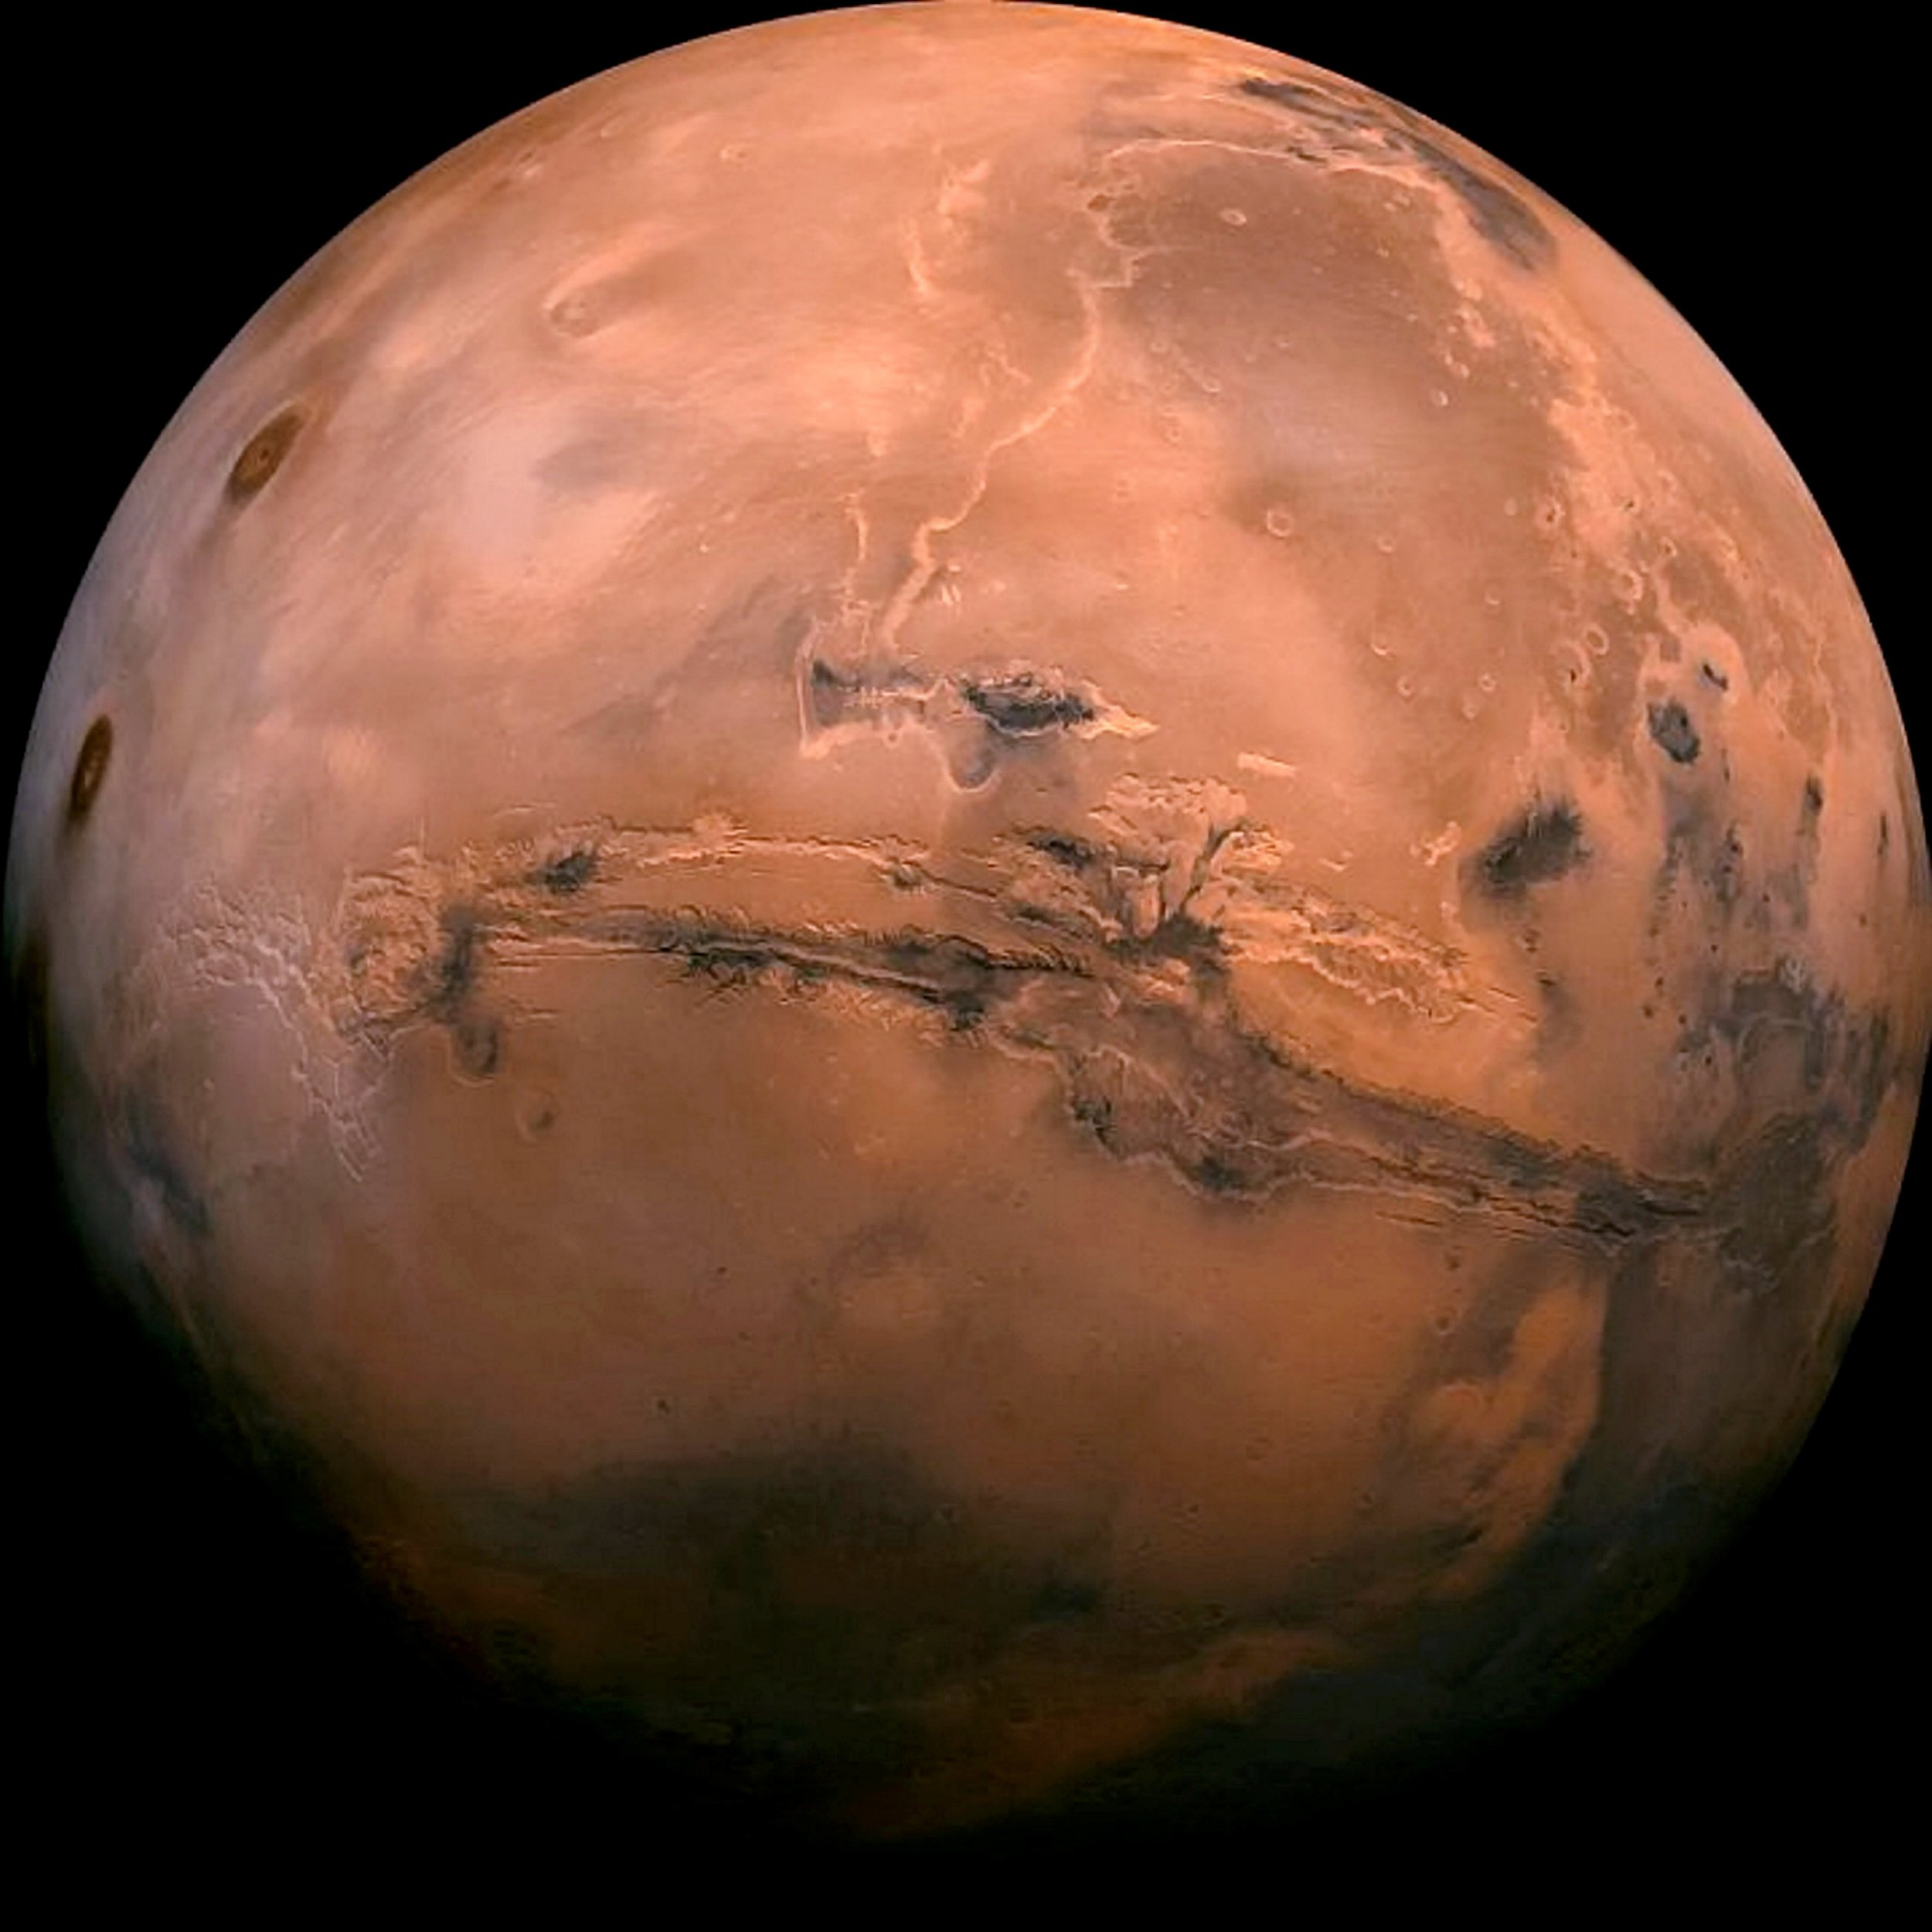 Embargo 18:00 GMT (27-MAR-2019 14:00 ET). The planet Mars. Rivers on Mars wider than any of Earth today and may have flown more than scientists previously thought. See NATIONAL story NNMARS. Scientists have long been puzzled as to why ancient Mars had liquid water because it had an extremely thin atmosphere both today and early on in the planet's history. March also only received a third of the sunlight that present-day Earth does, which should not be enough heat to maintain water. Now dry, Mars' water once carved out deep riverbeds. The new study suggests the long-dead rivers could have been affected by climate-driven rains and a strong greenhouse effect. Its findings suggest it rained on Mars as well as the planet was losing atmosphere and drying out one billion years ago. The team at the University of Chicago concludes Mars rivers were about two times more than those on Earth and there is evidence of intense surface run-off between 3.6 and one billion years ago.